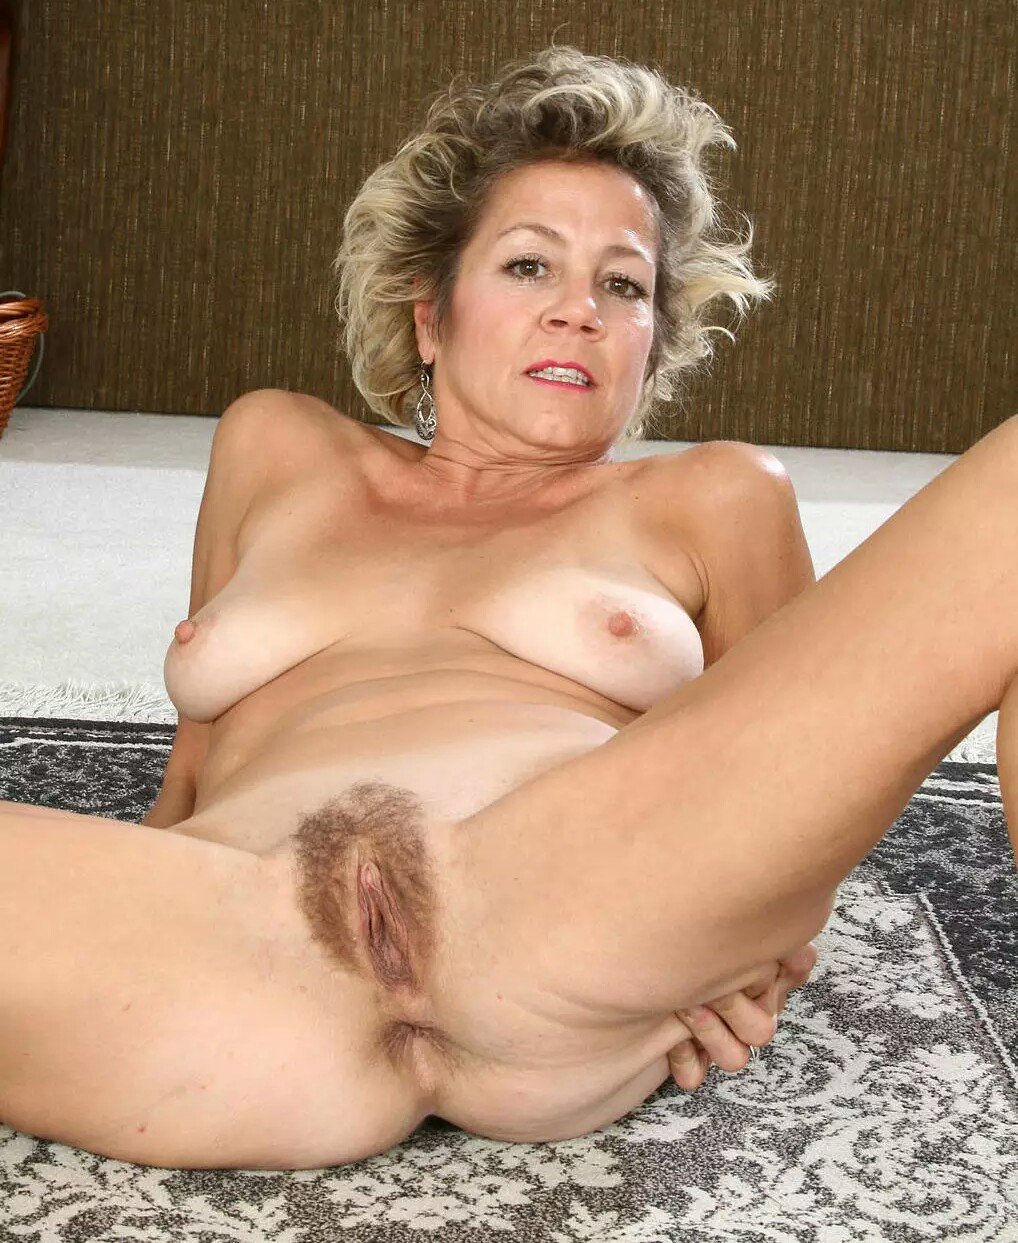 Pics of hairy older women